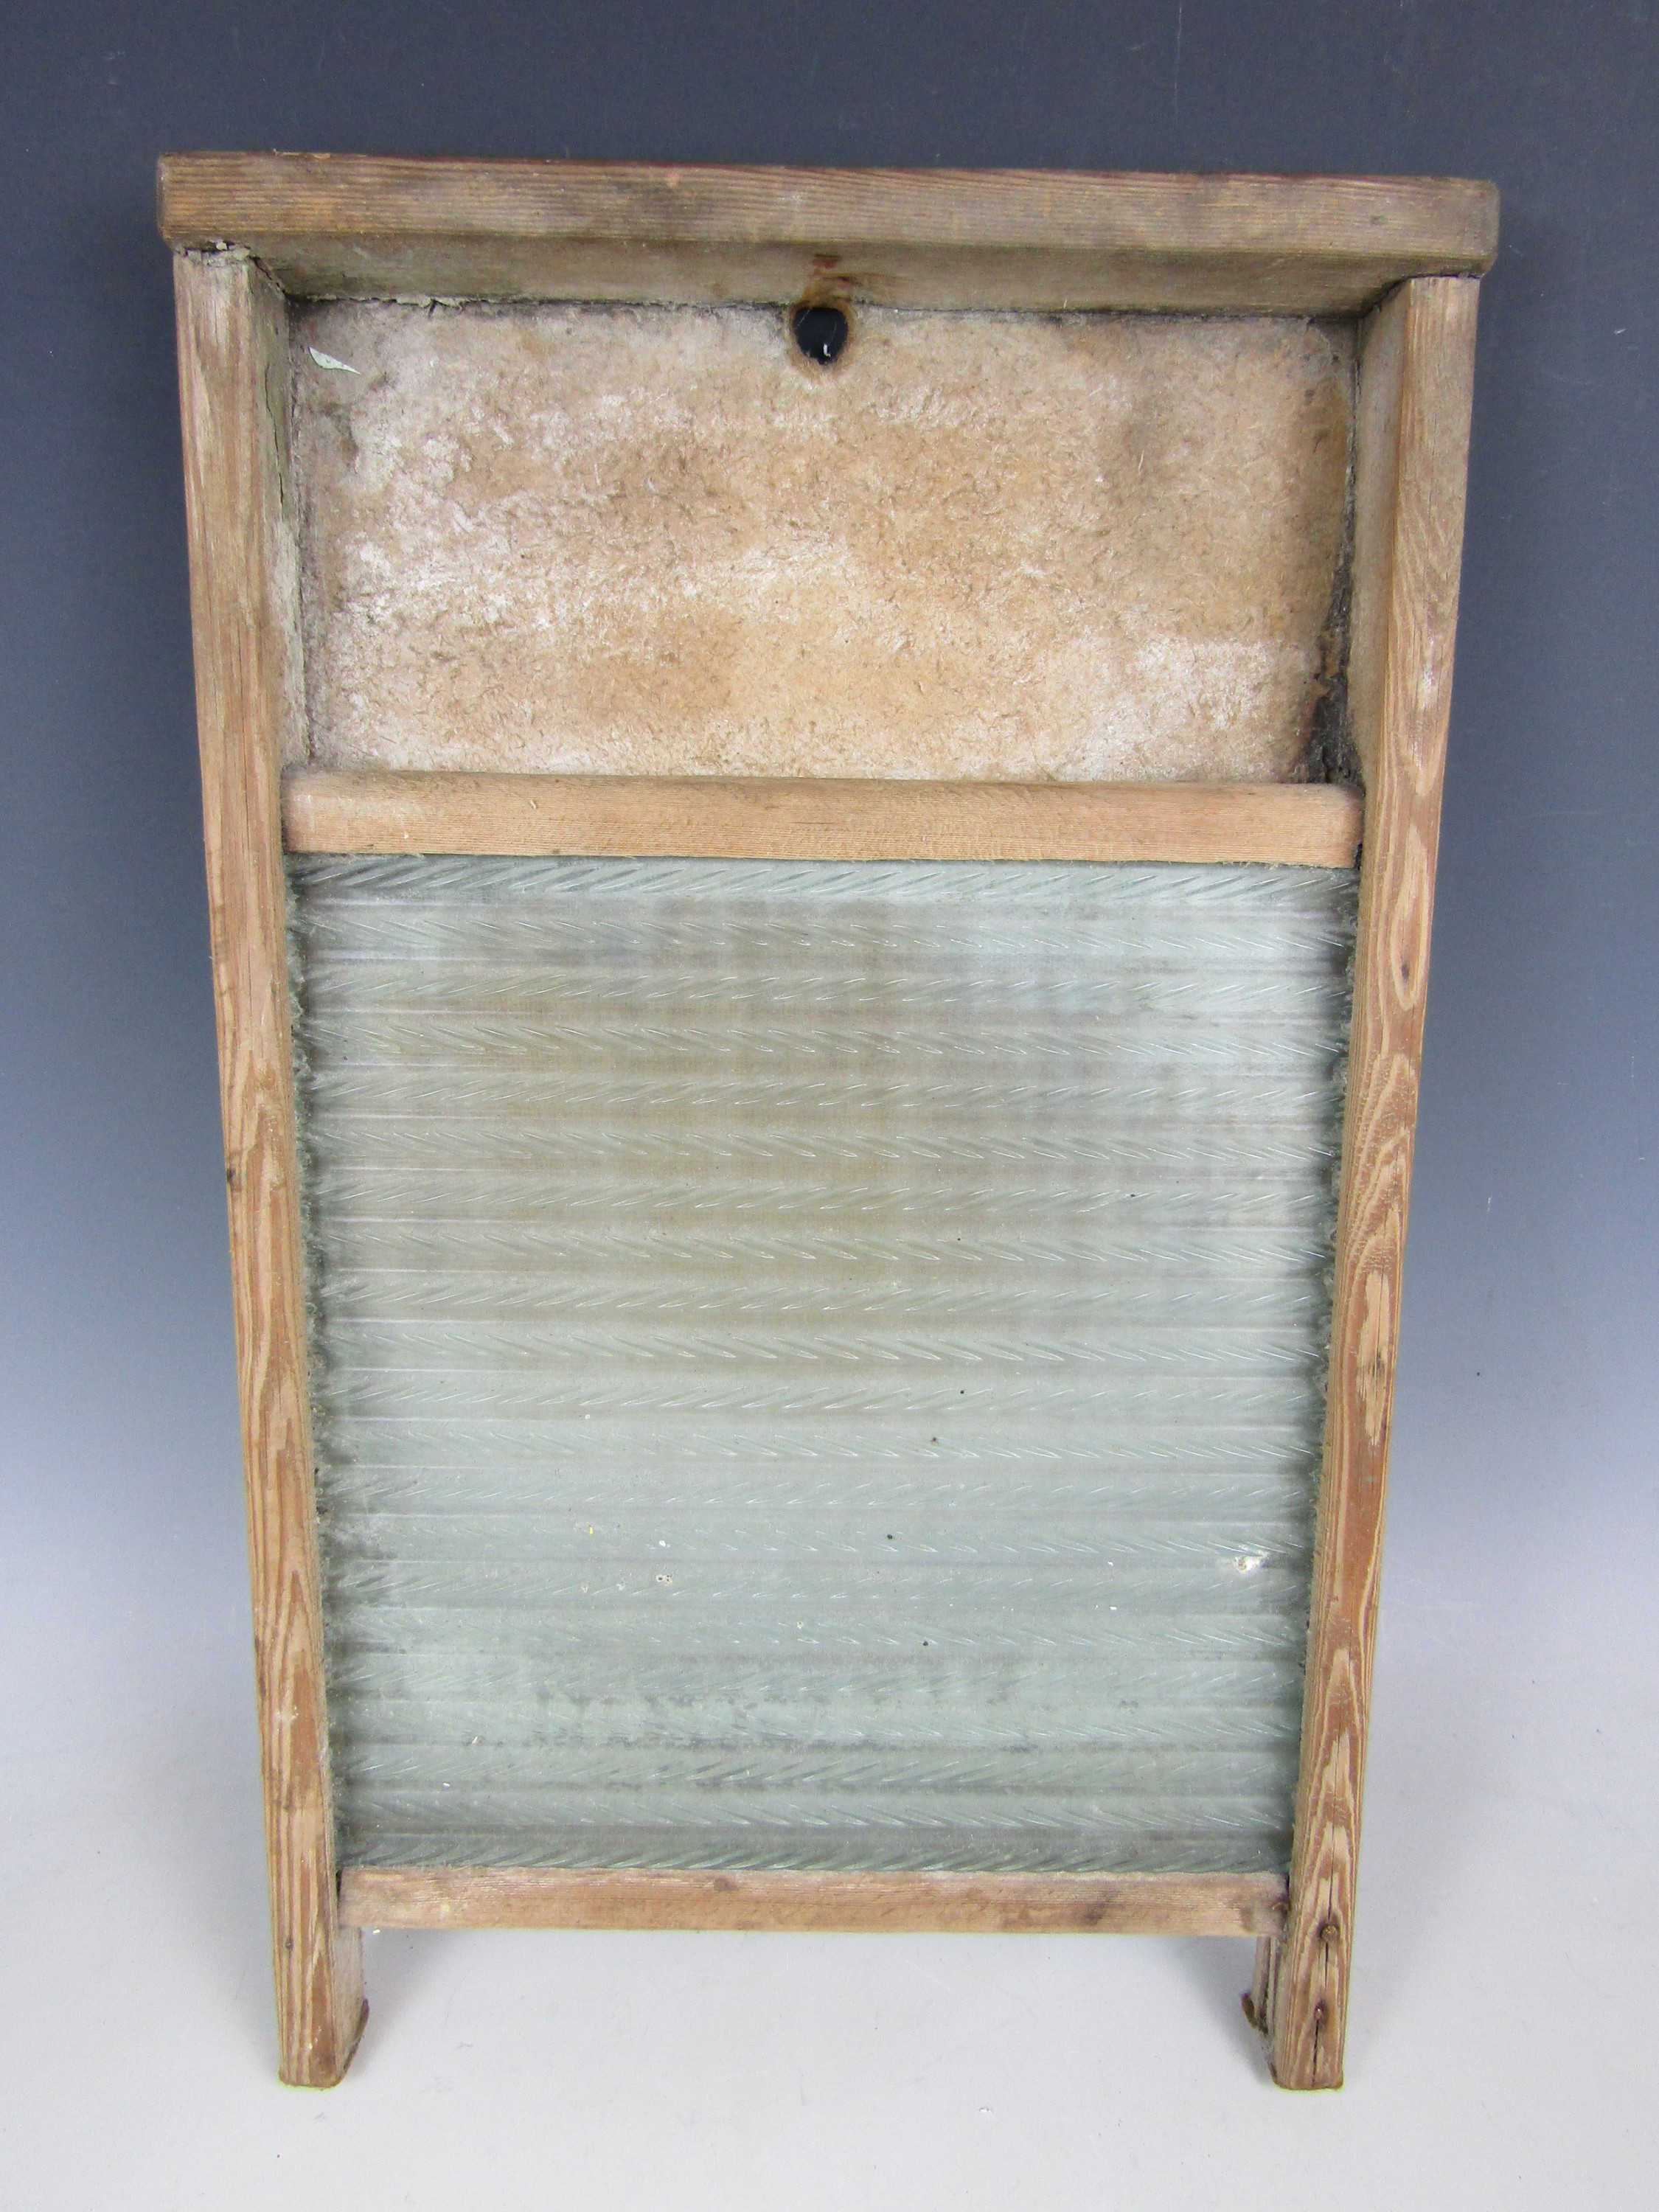 Lot 45 - An antique washboard